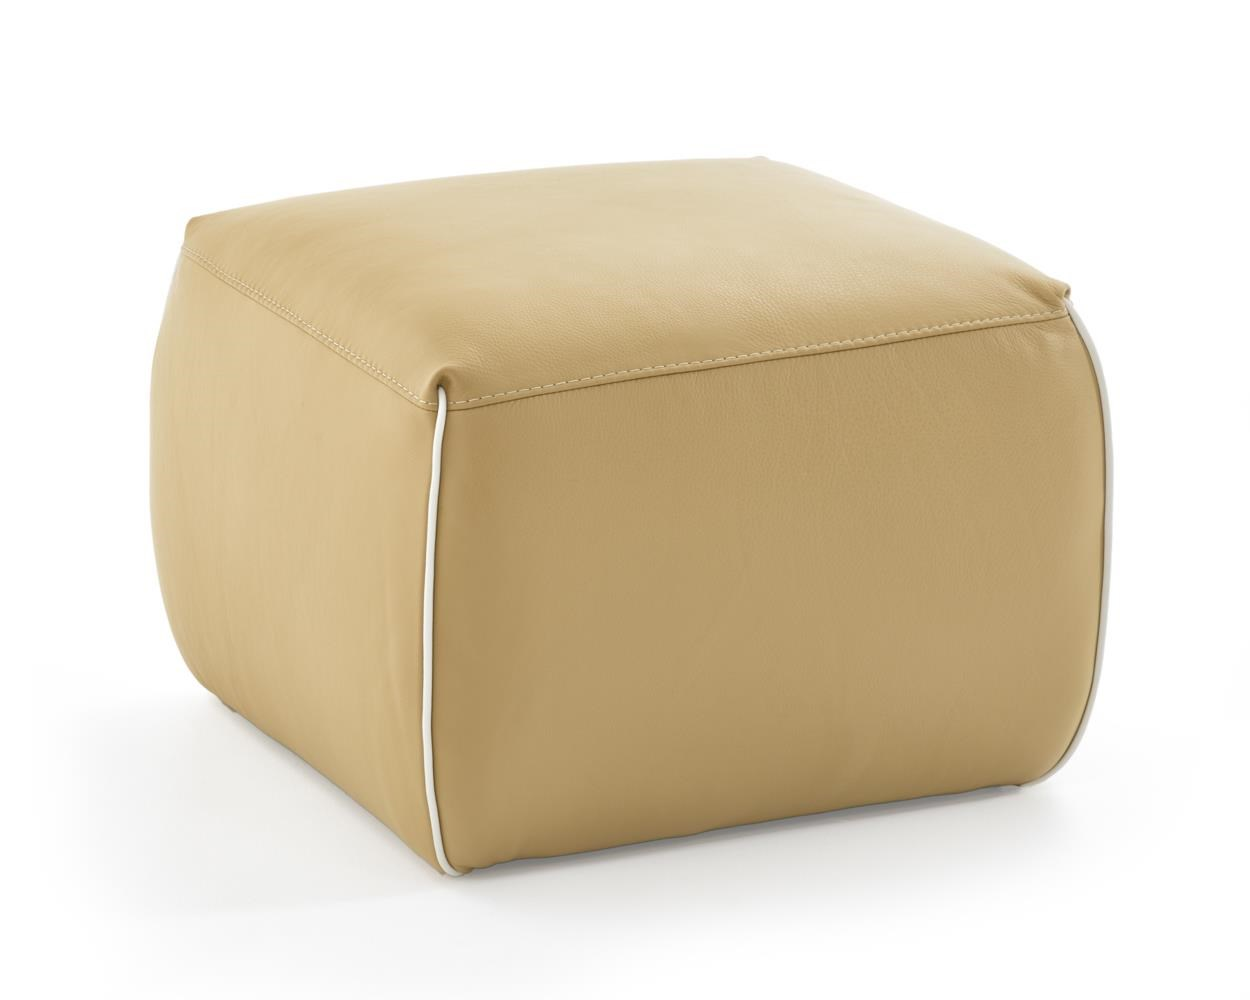 Natuzzi Editions A921 Ottoman - Item Number: A921-243 TAN